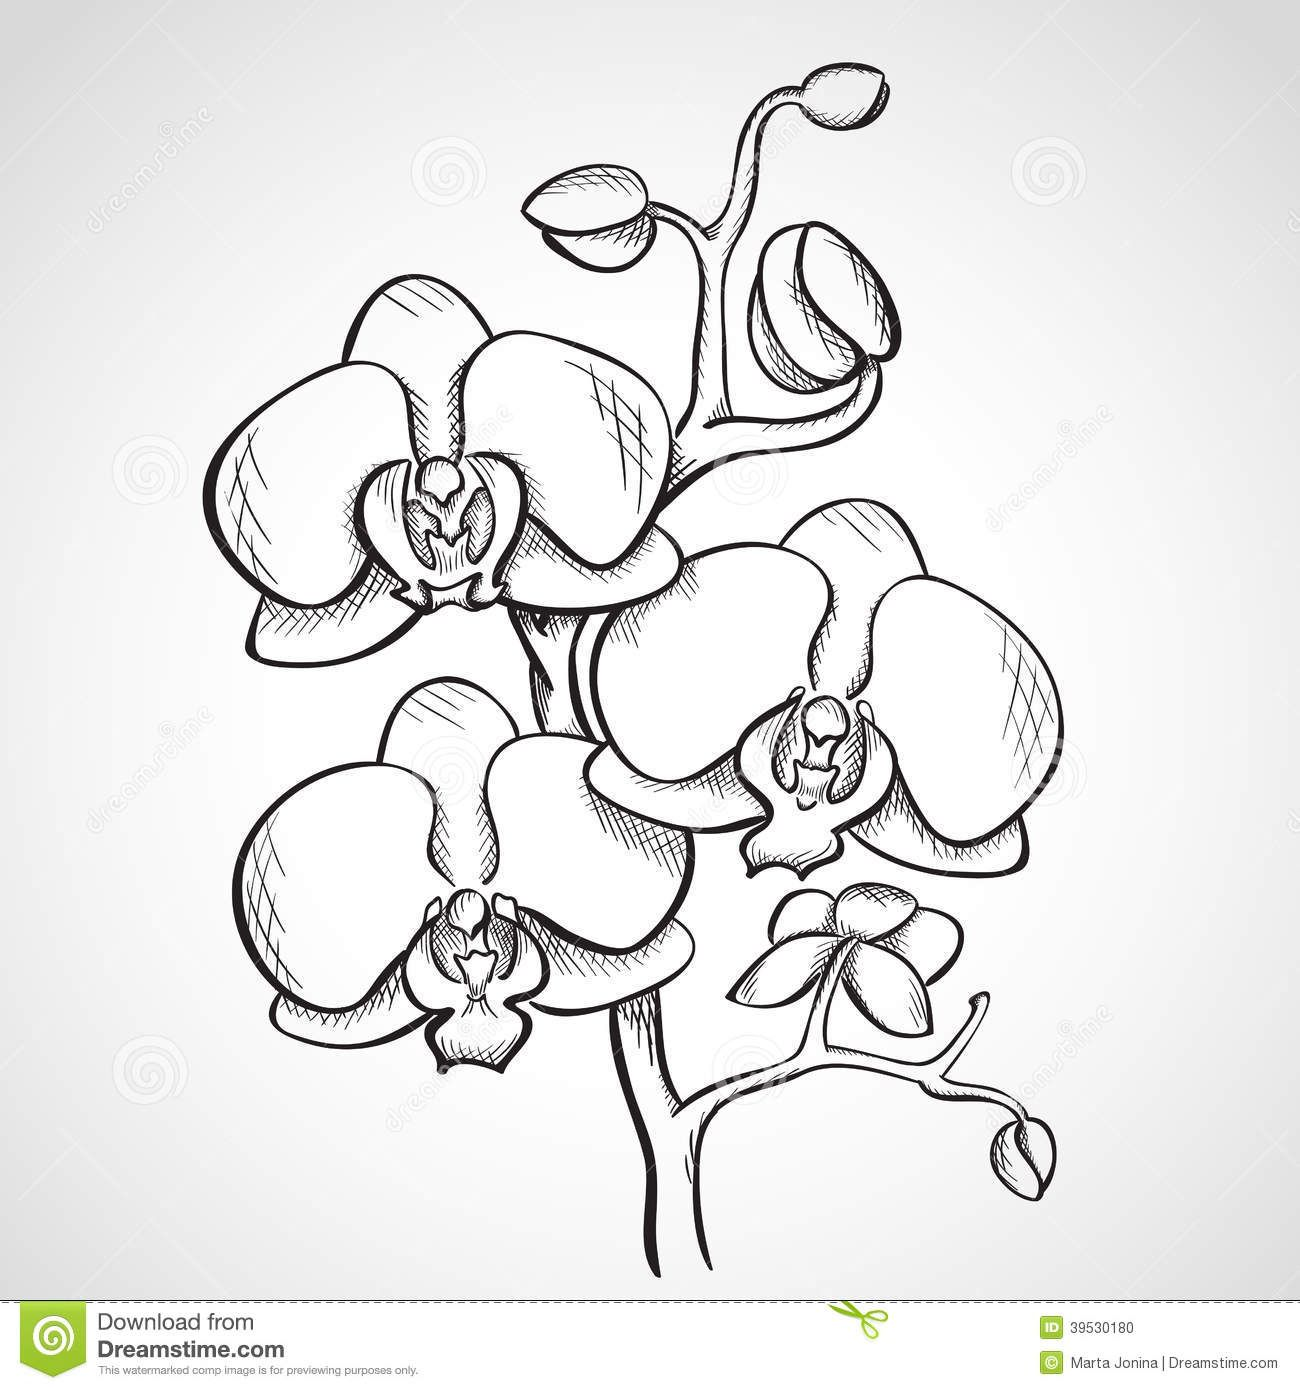 Sketch Orchid Branch Download From Over 63 Million High Quality Stock Photos Images Vectors Sign Up For Orchid Drawing Orchids Painting How To Draw Hands